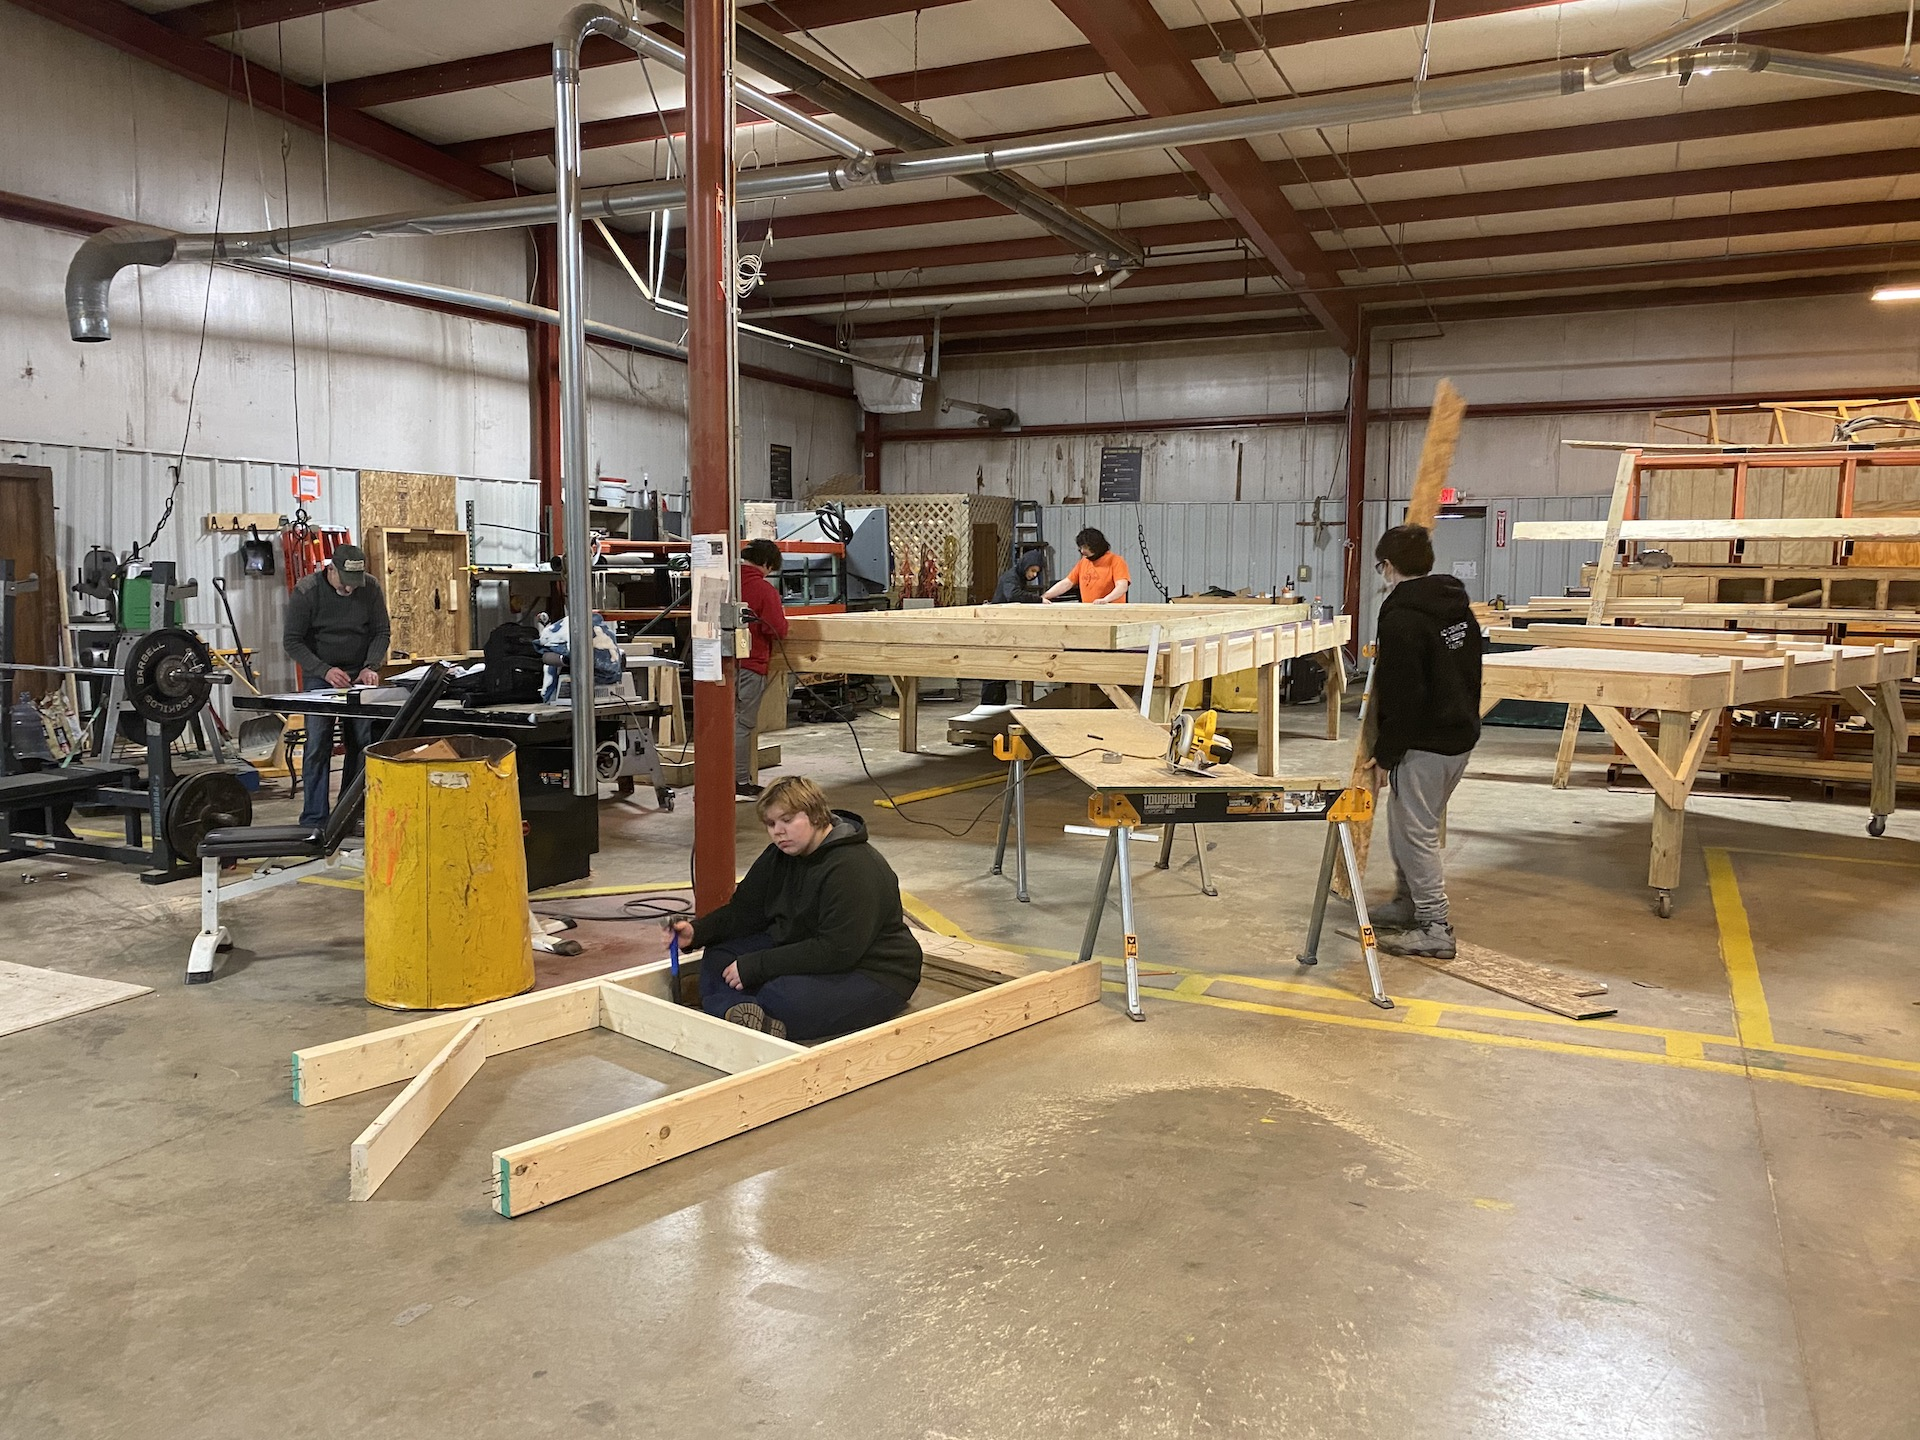 Students working in woodworking shop building tiny shelters